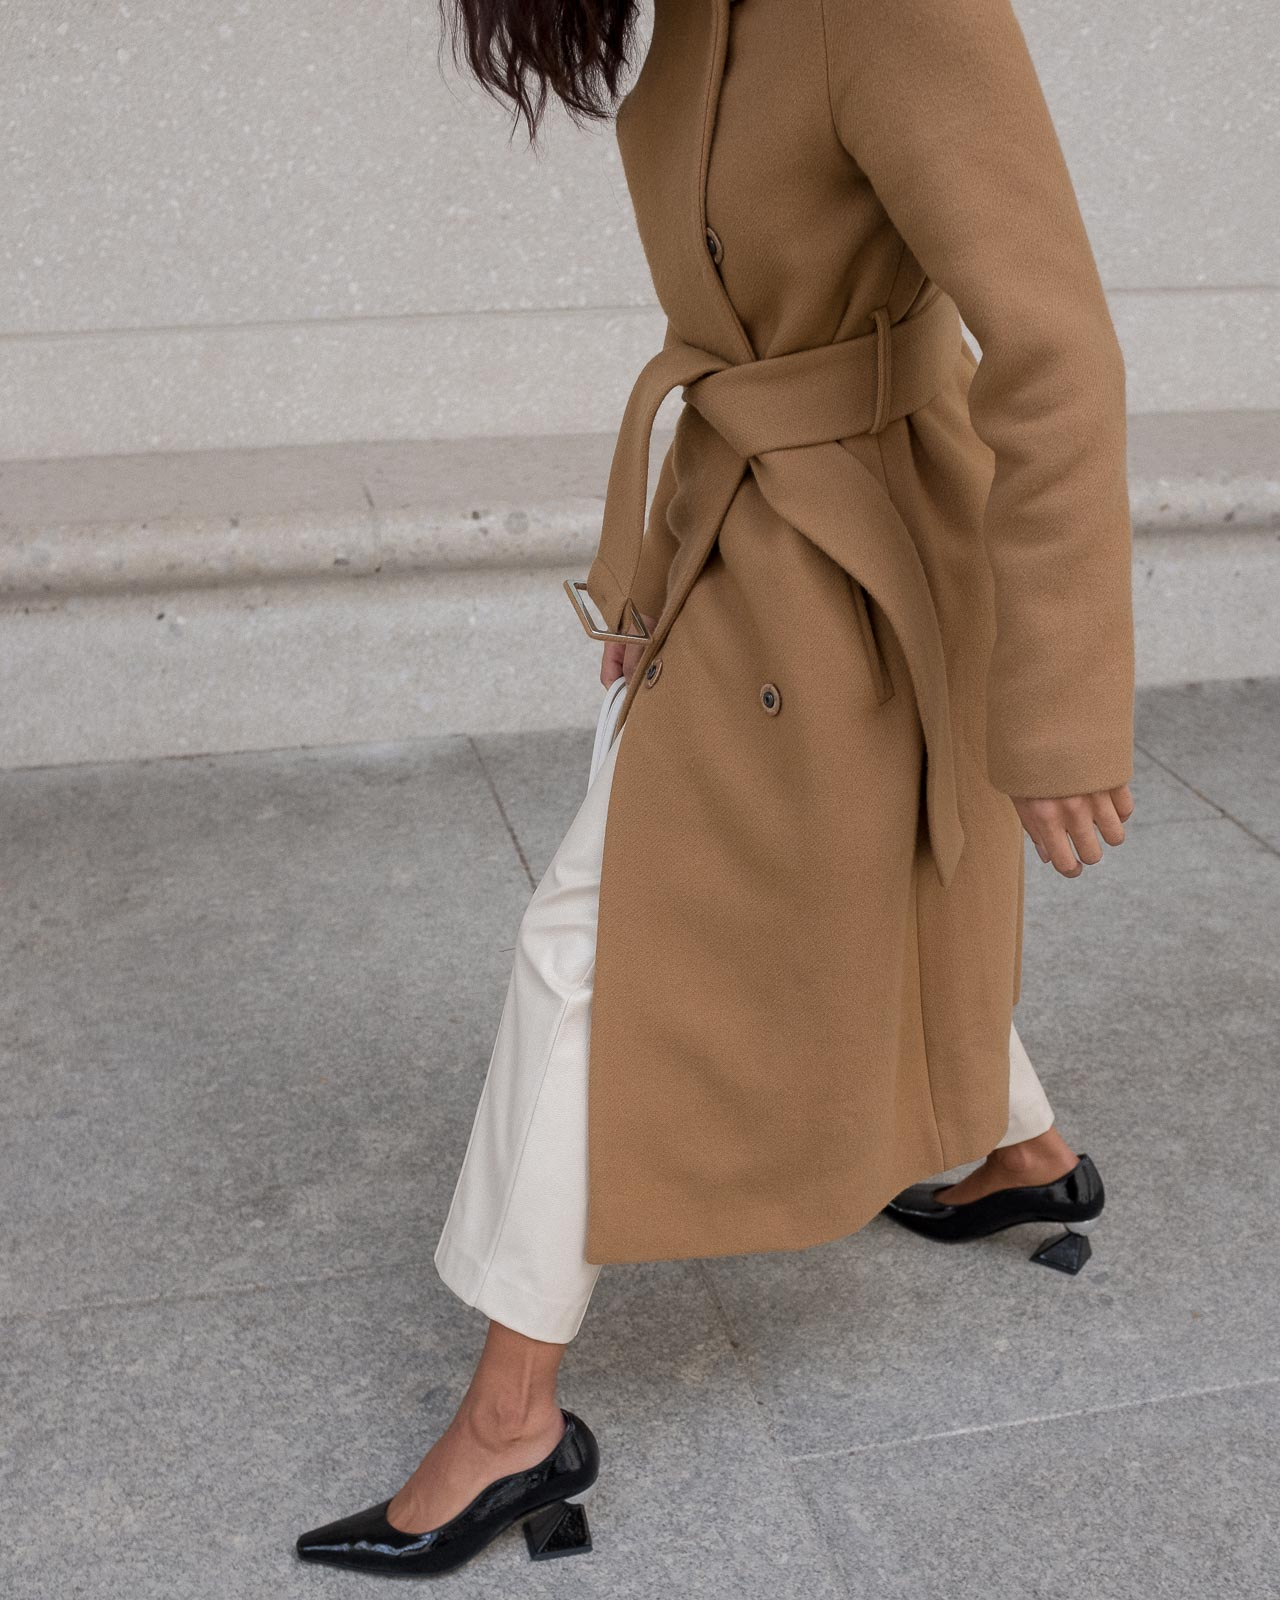 storm wears weekday creme pants combined with yuul yie black mules and by malene birger camel coat